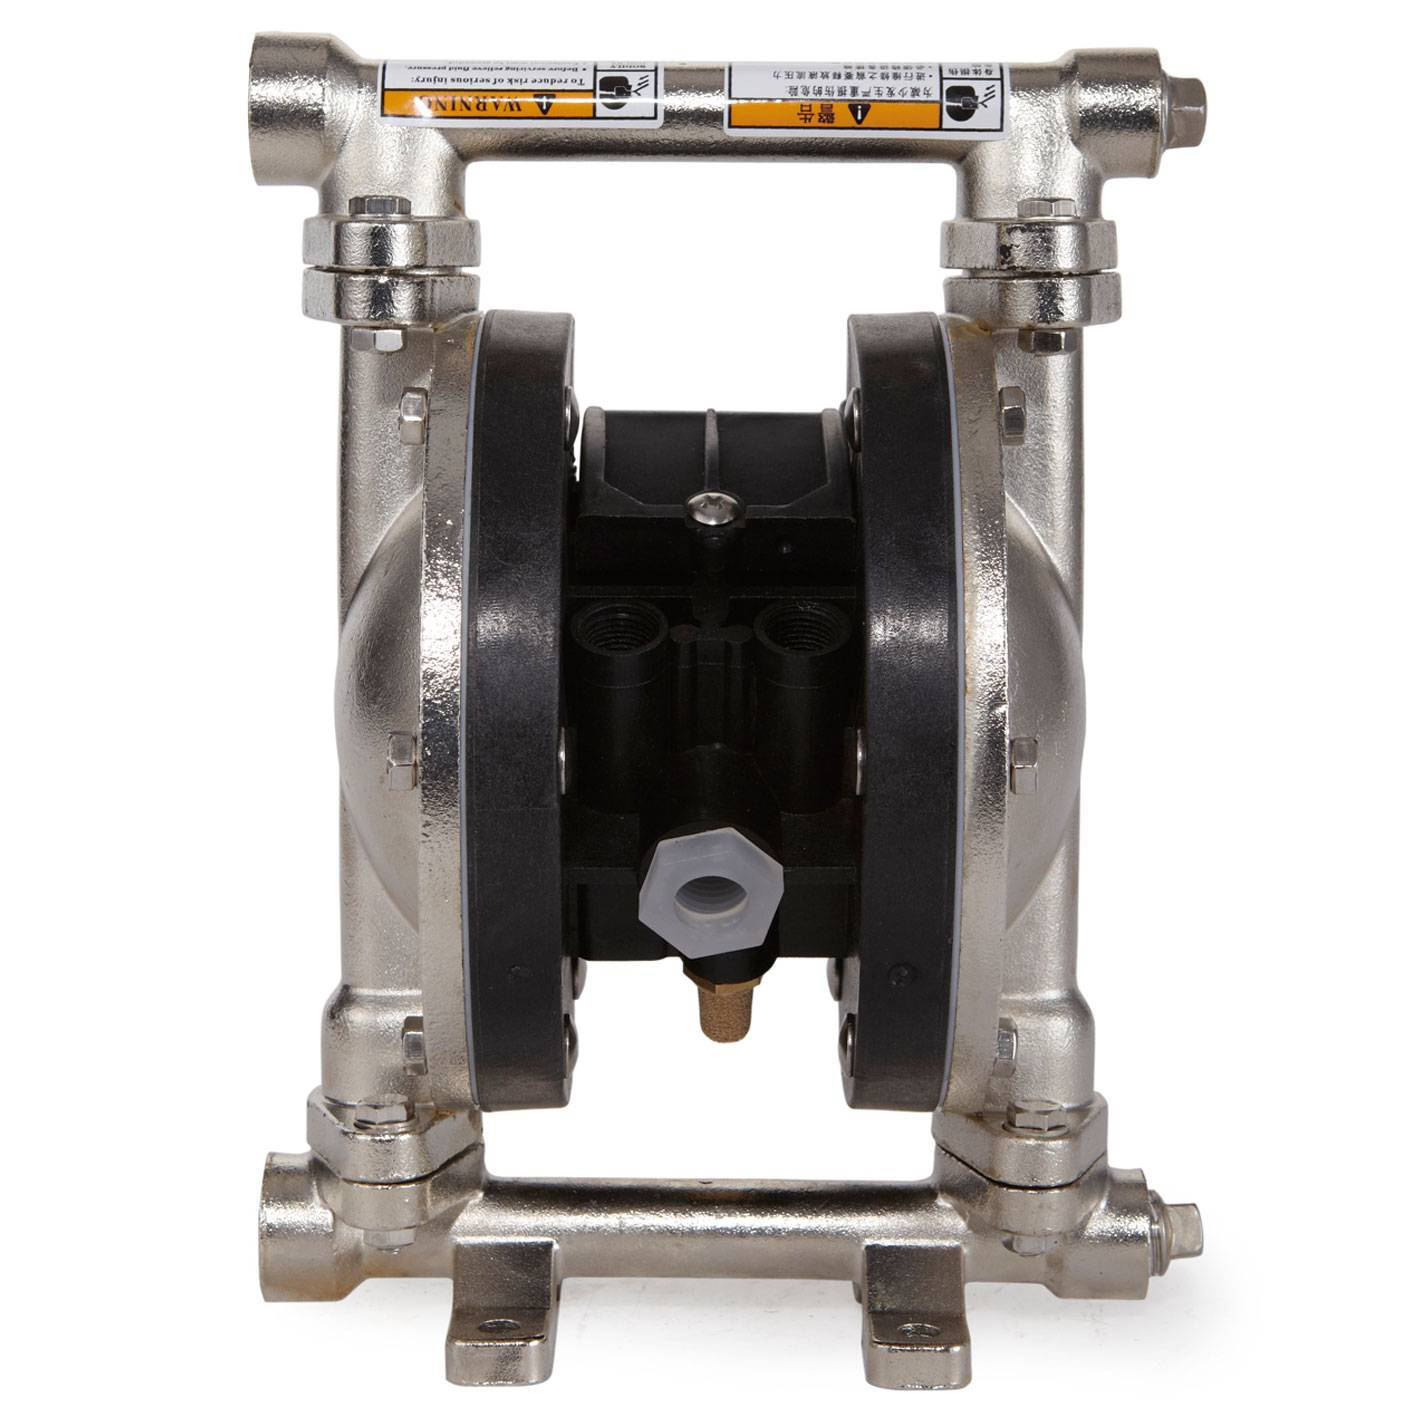 QBY3- 10/15 Stainless Steel Air Operated Diaphragm Pump